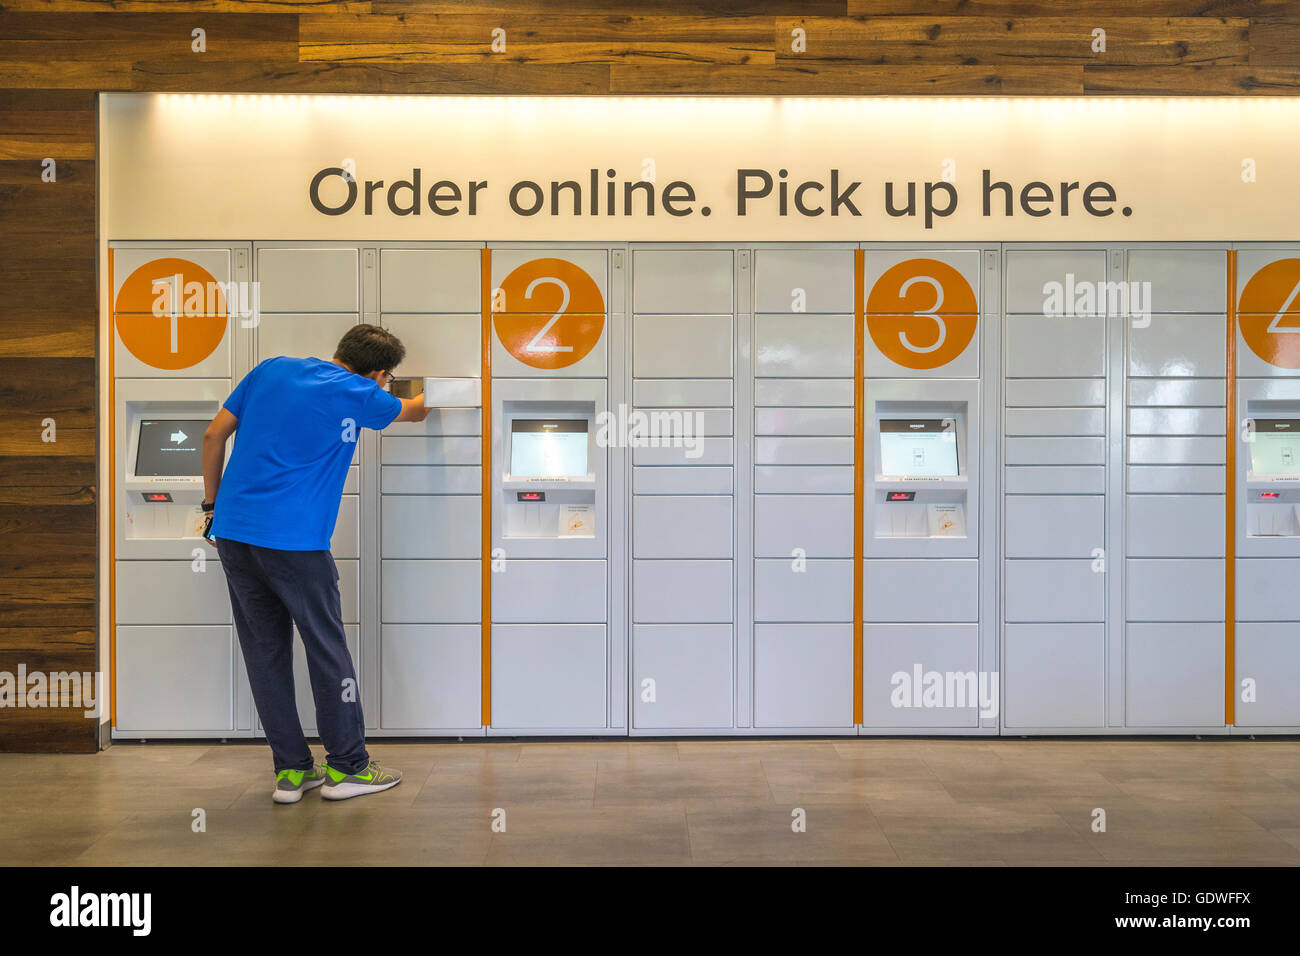 Man reaching into an ecommerce locker to get a package he ordered online - Stock Image